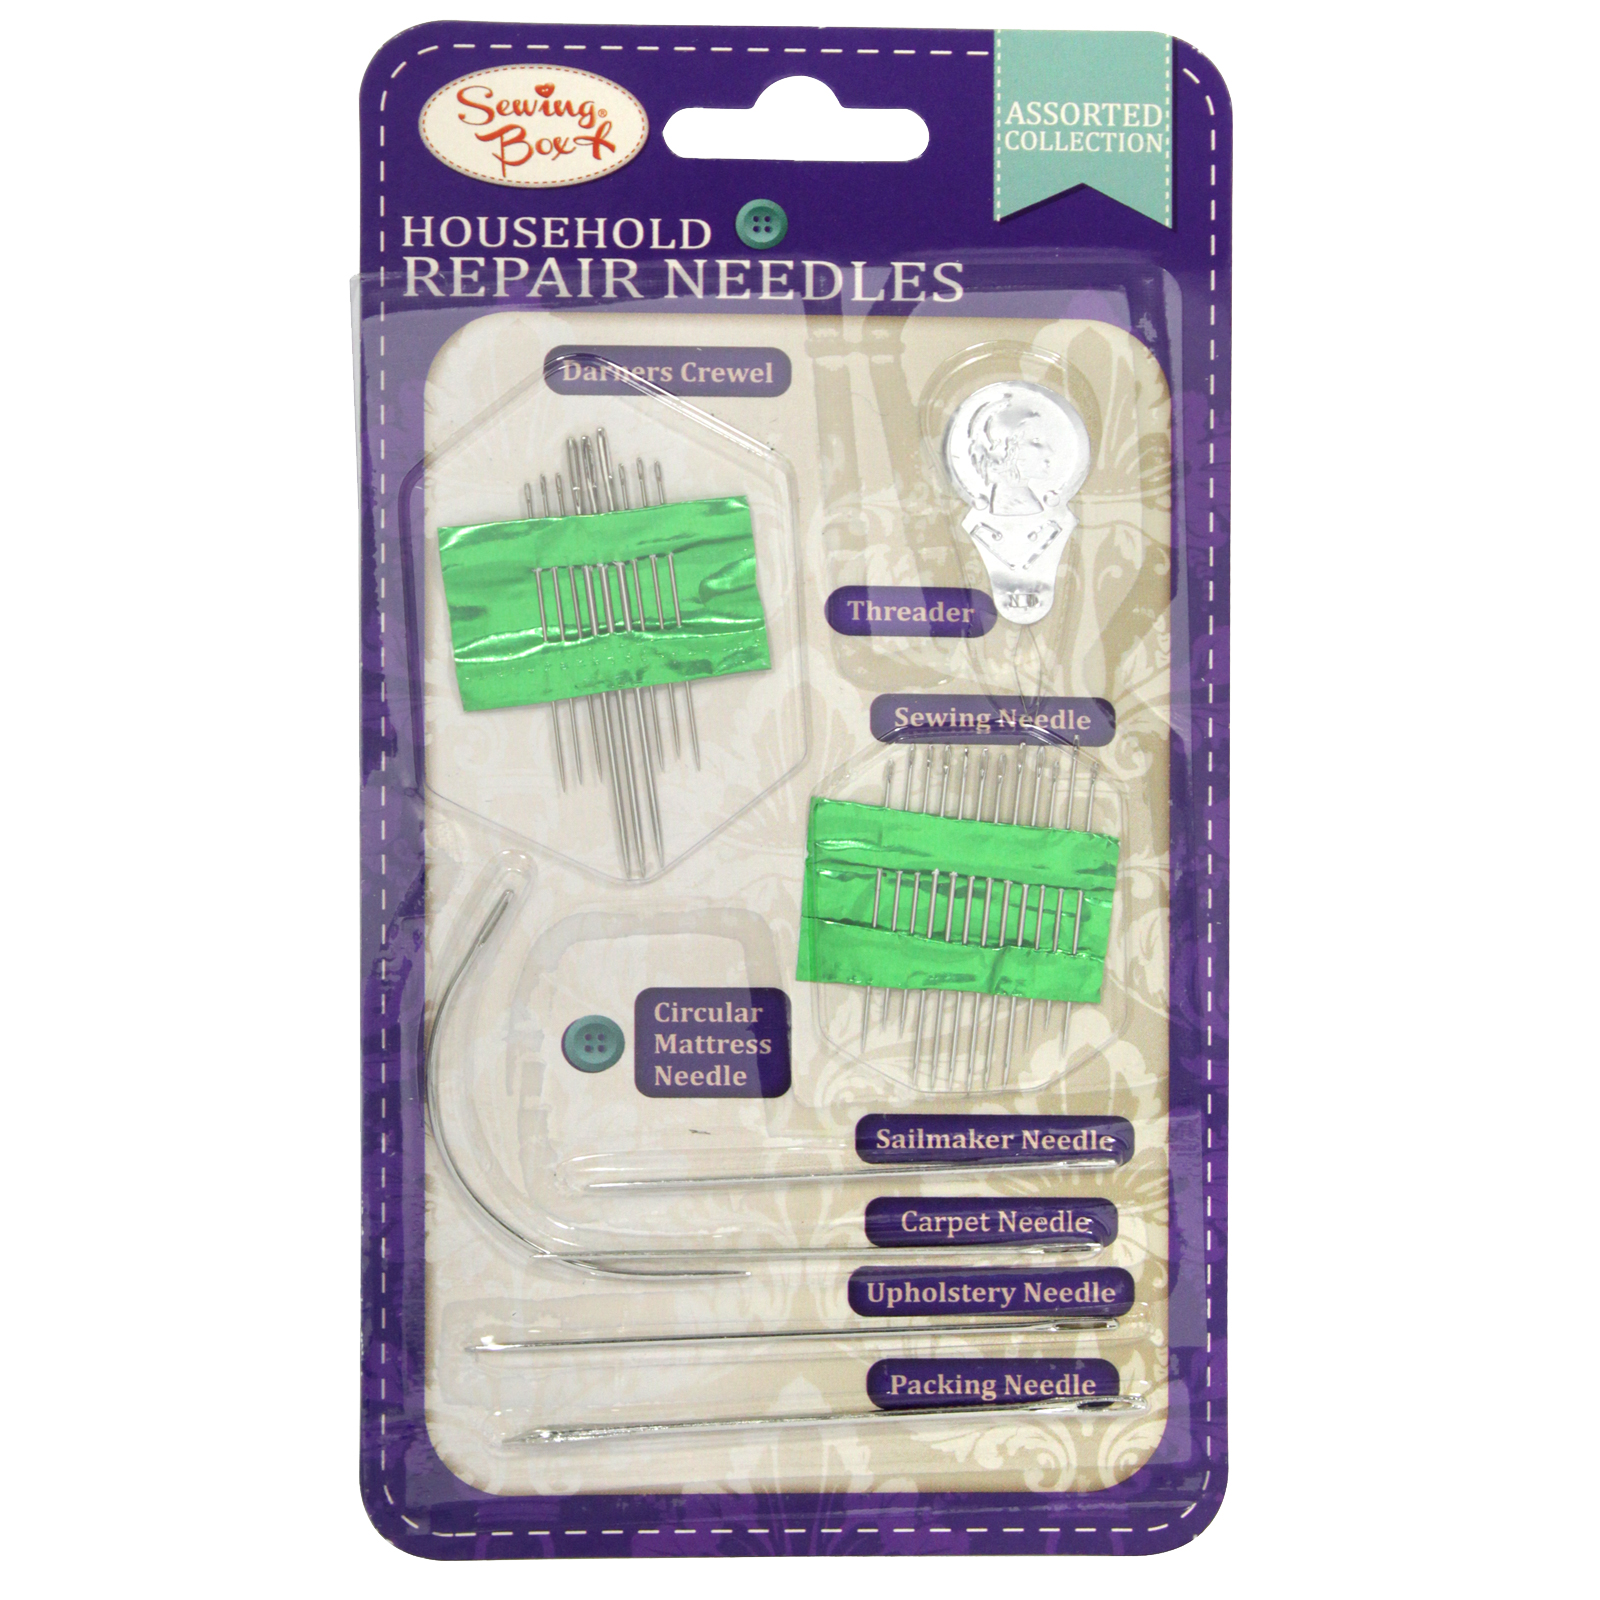 SEWING BOX HOUSEHOLD REPAIR NEEDLES